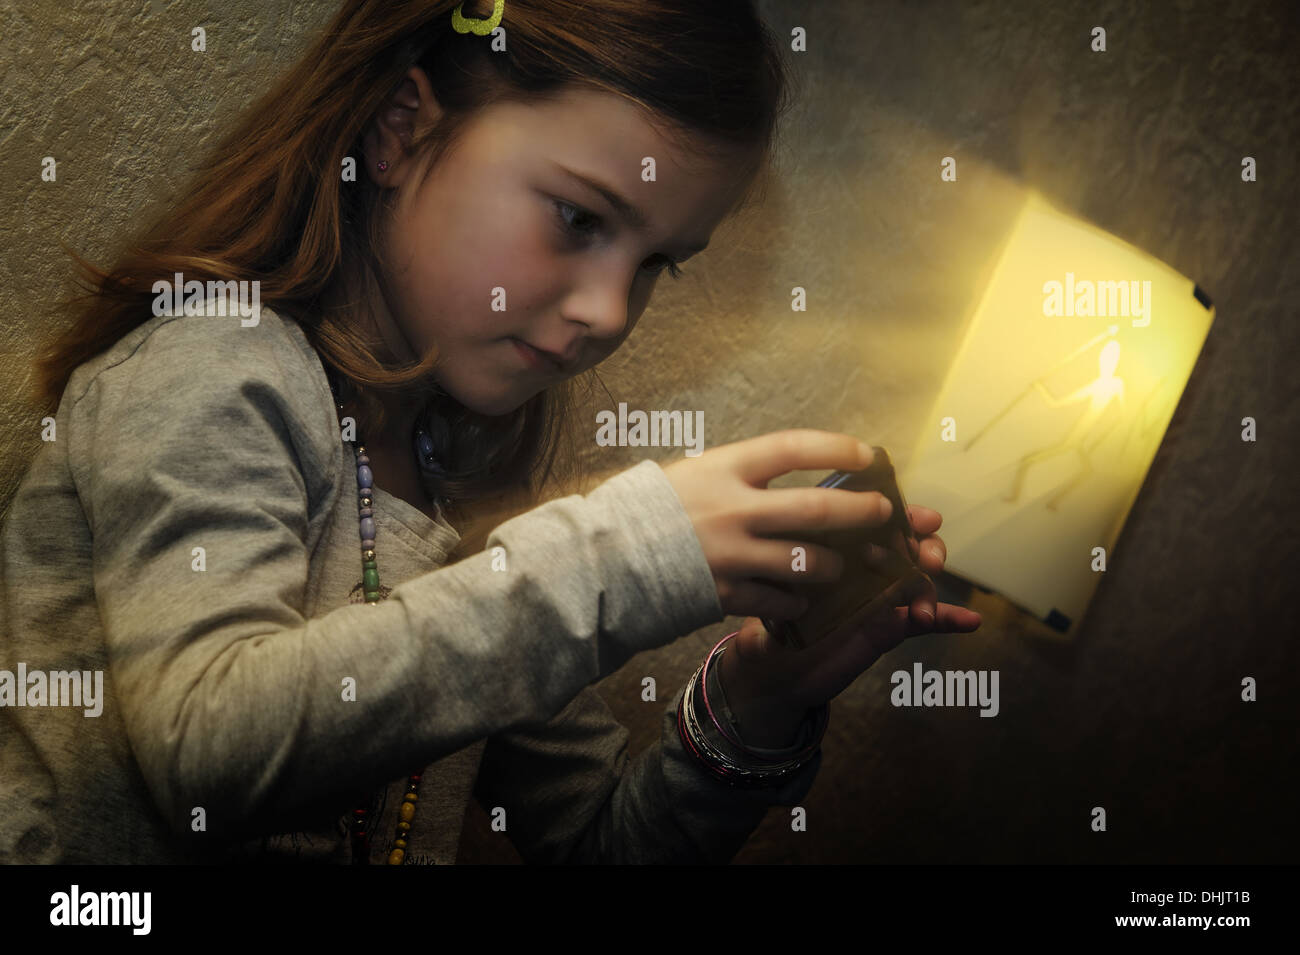 fascination of Technology - Stock Image